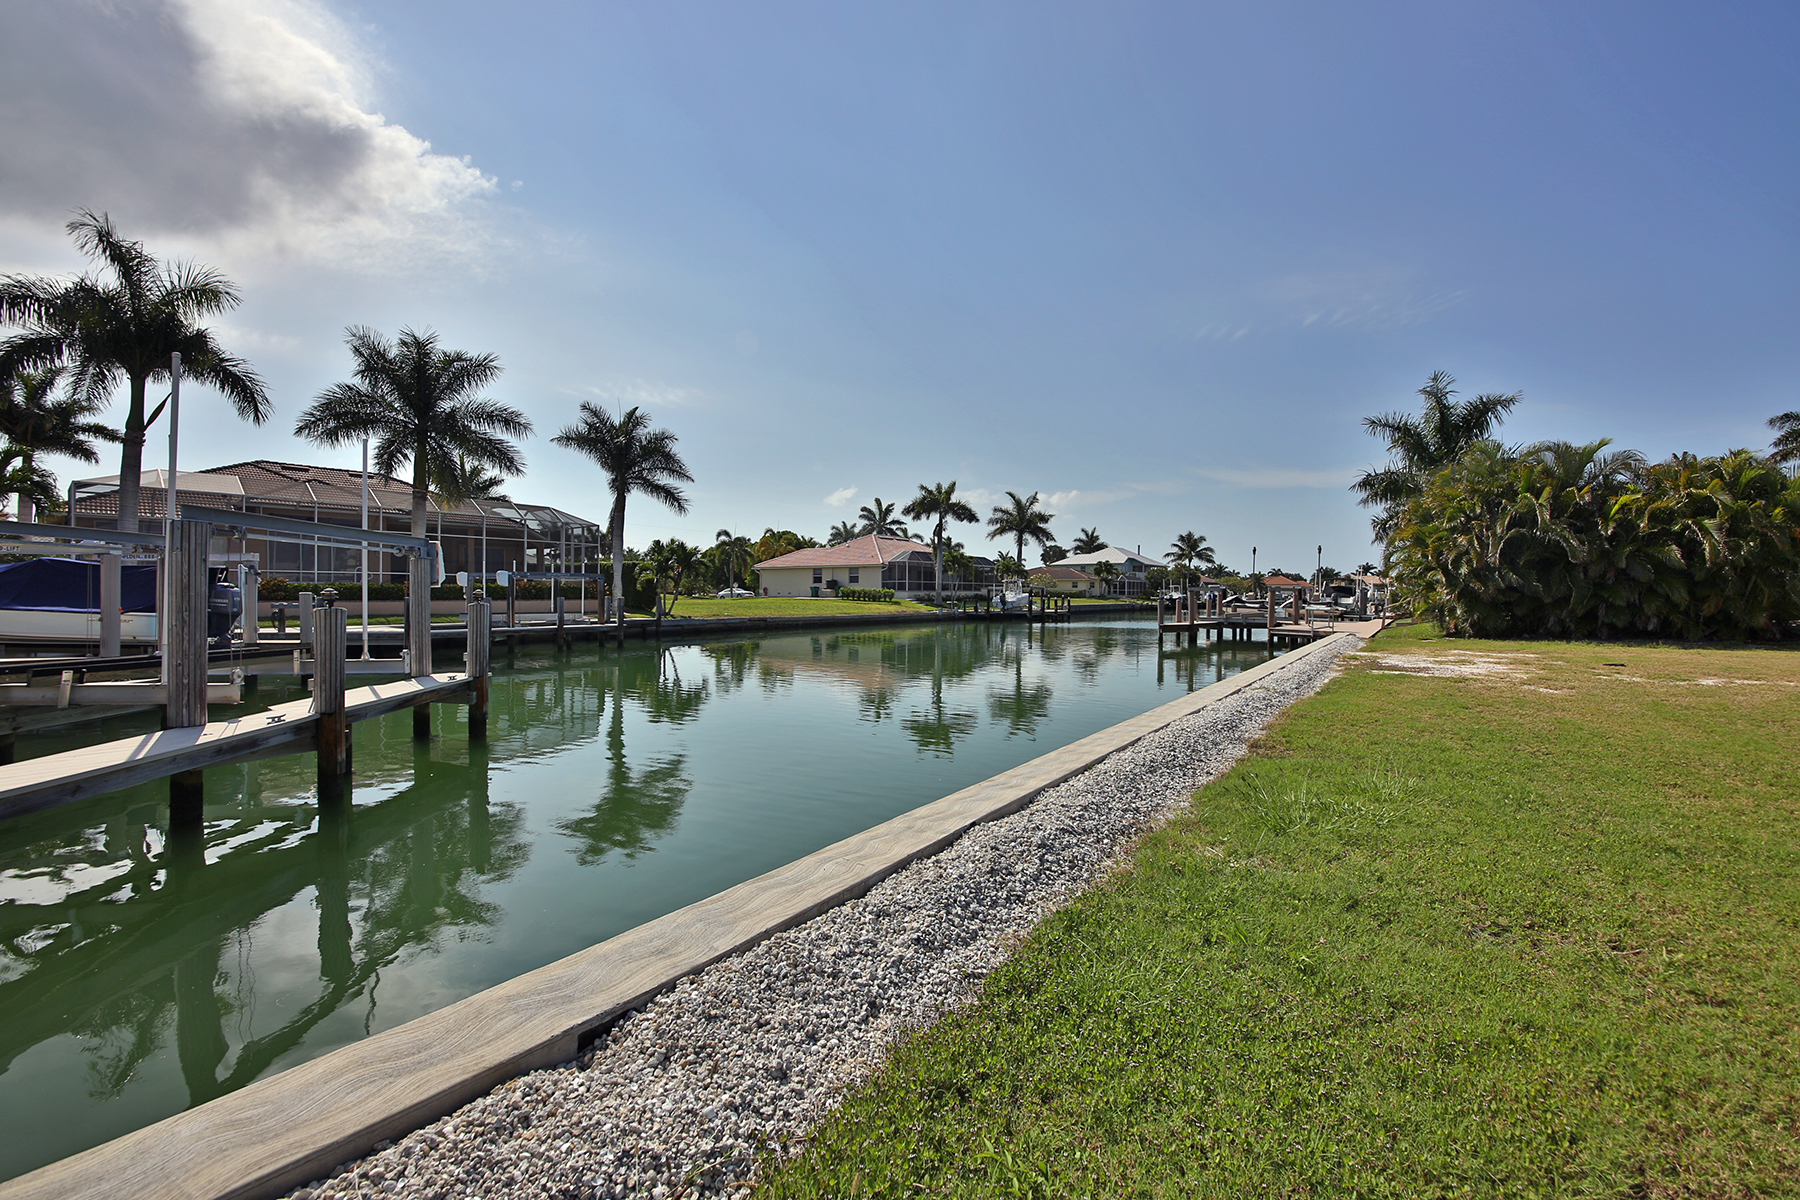 Land for Sale at MARCO ISLAND - BATTERSEA COURT 411 Battersea Ct Marco Island, Florida, 34145 United States